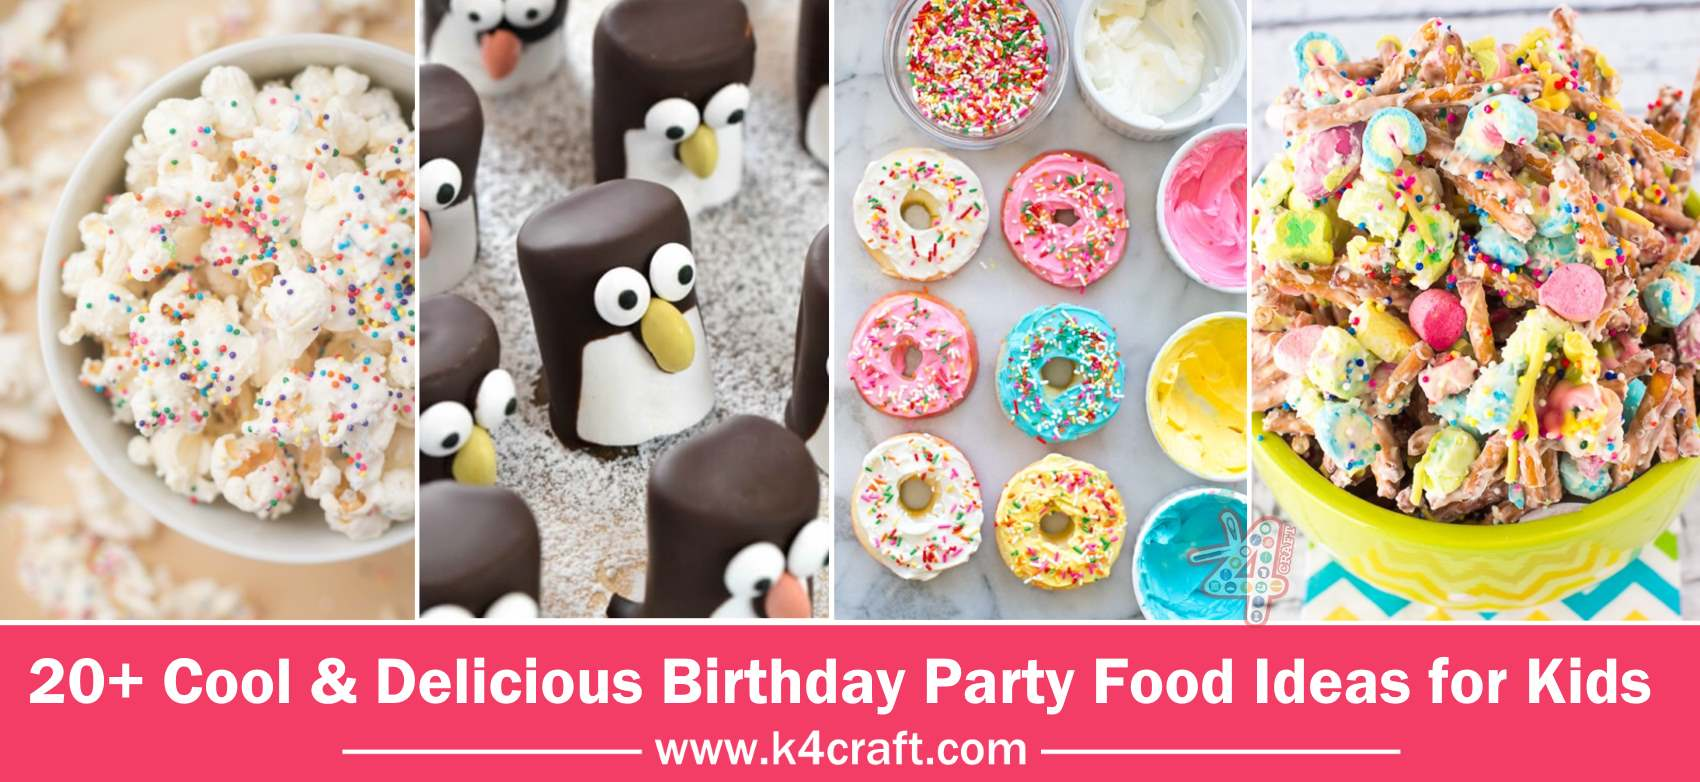 kids craft party ideas cool amp delicious birthday food ideas for k4 craft 4809